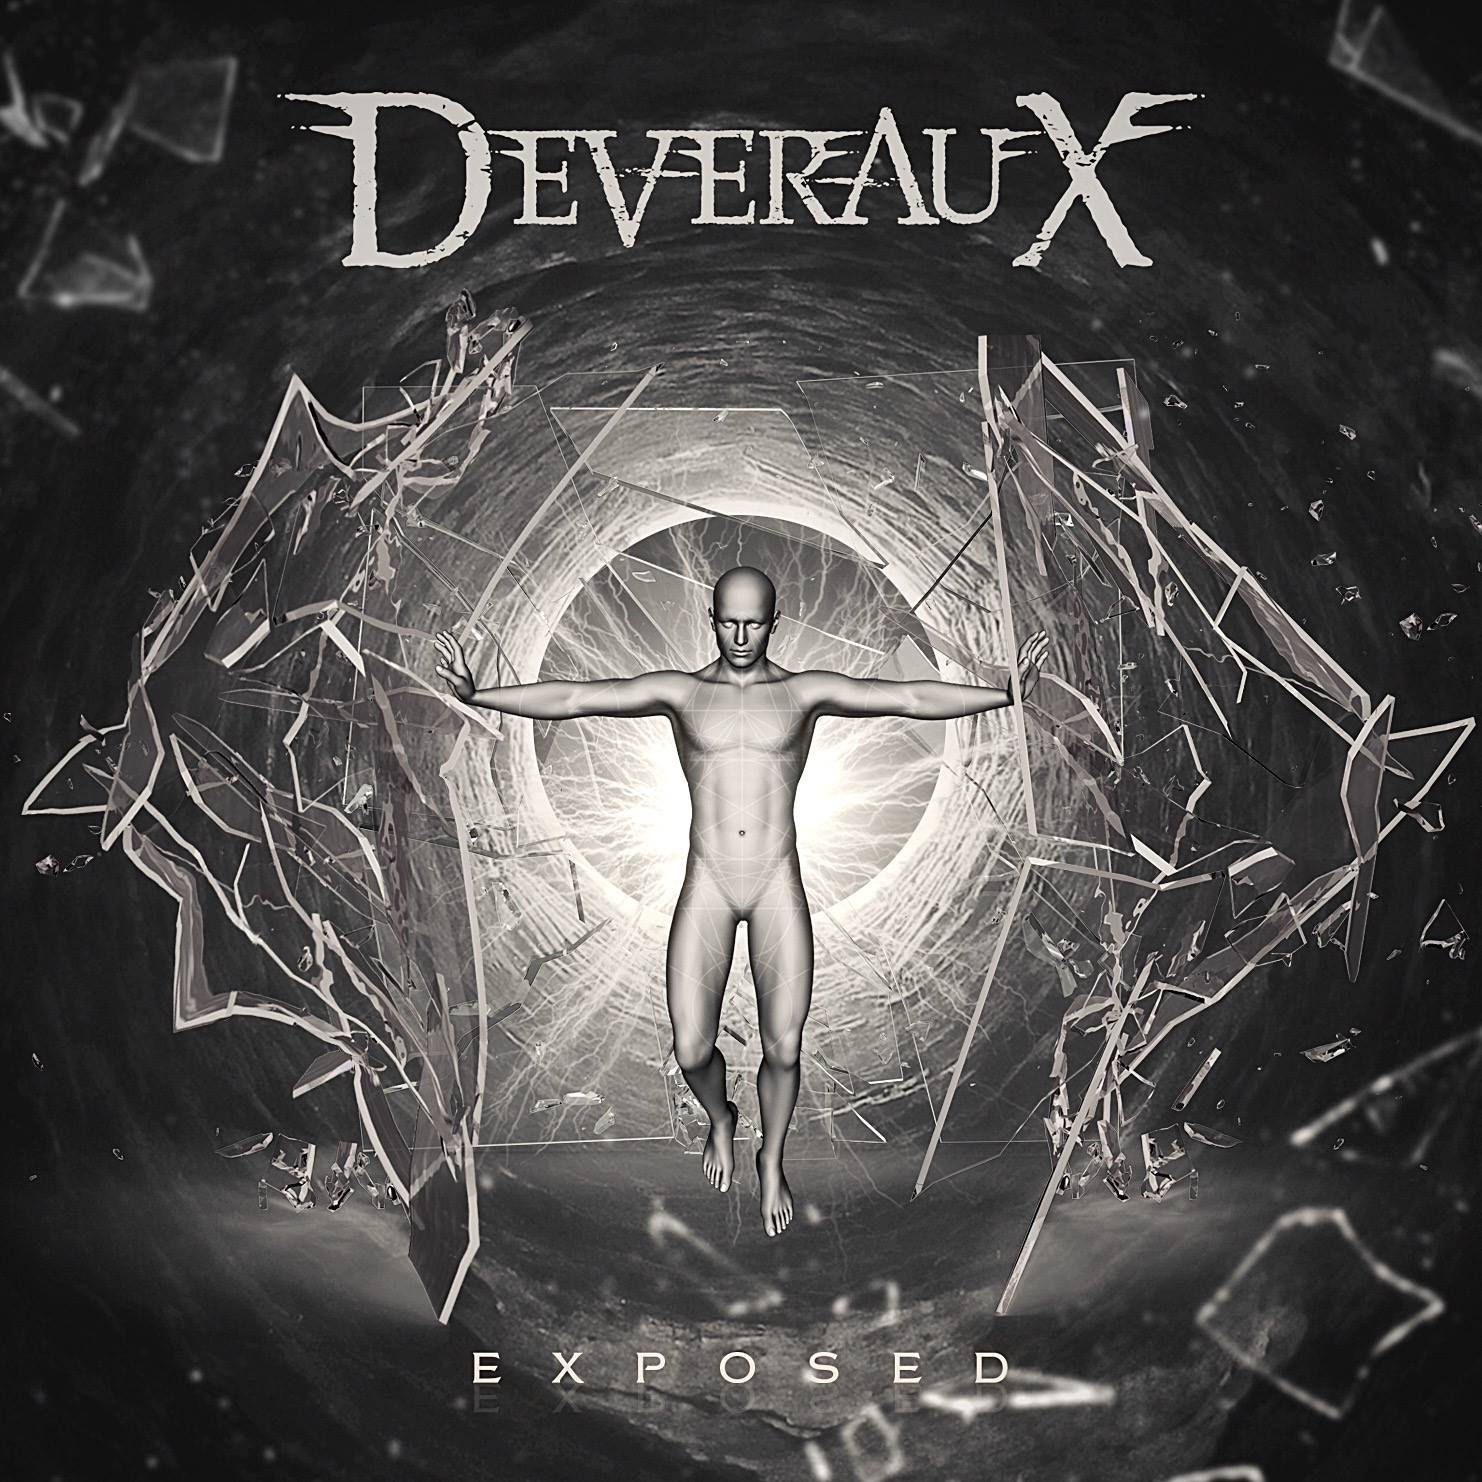 Header-Exposed-DeverauX-AlbumArt